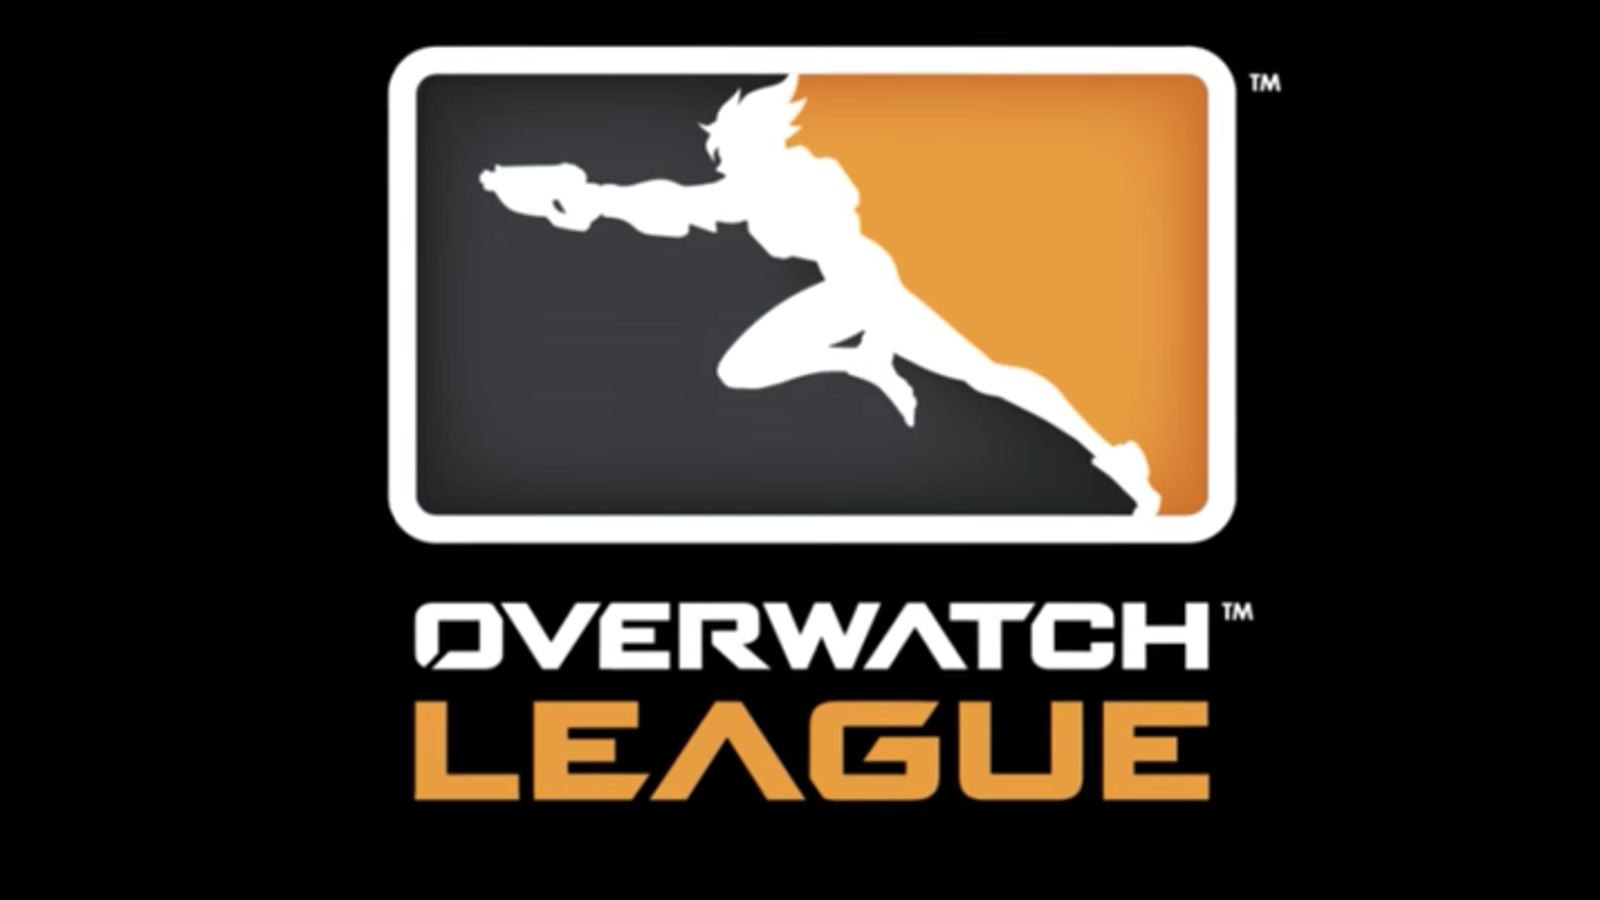 Major League Baseball has a problem with the Overwatch League logo screenshot